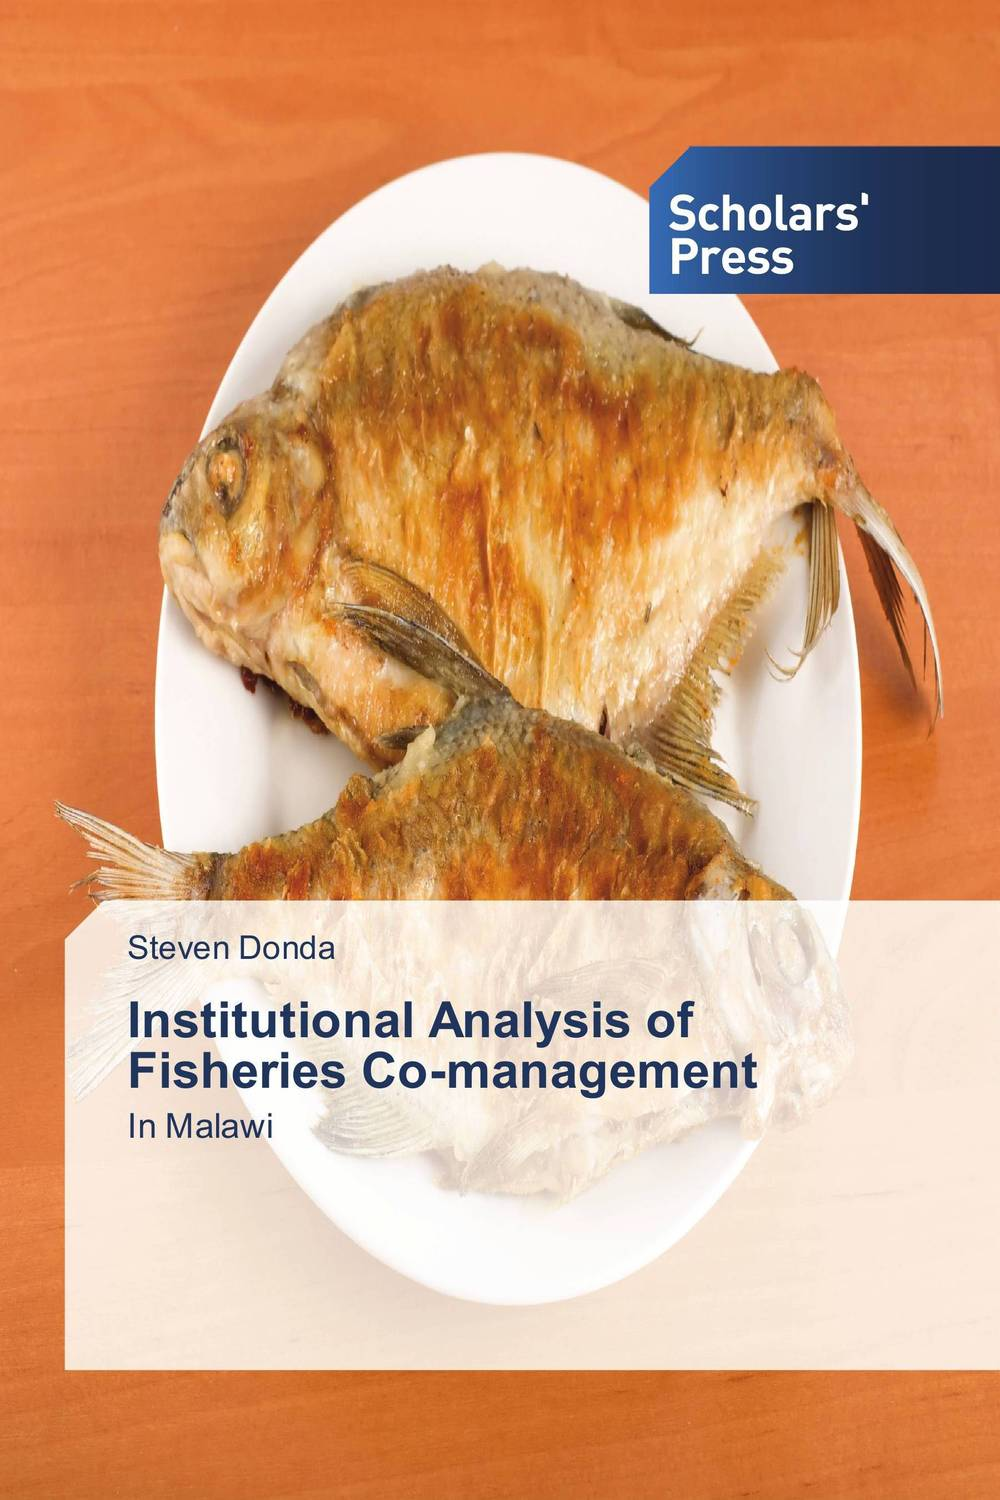 Institutional Analysis of Fisheries Co-management institutional analysis of fisheries co management